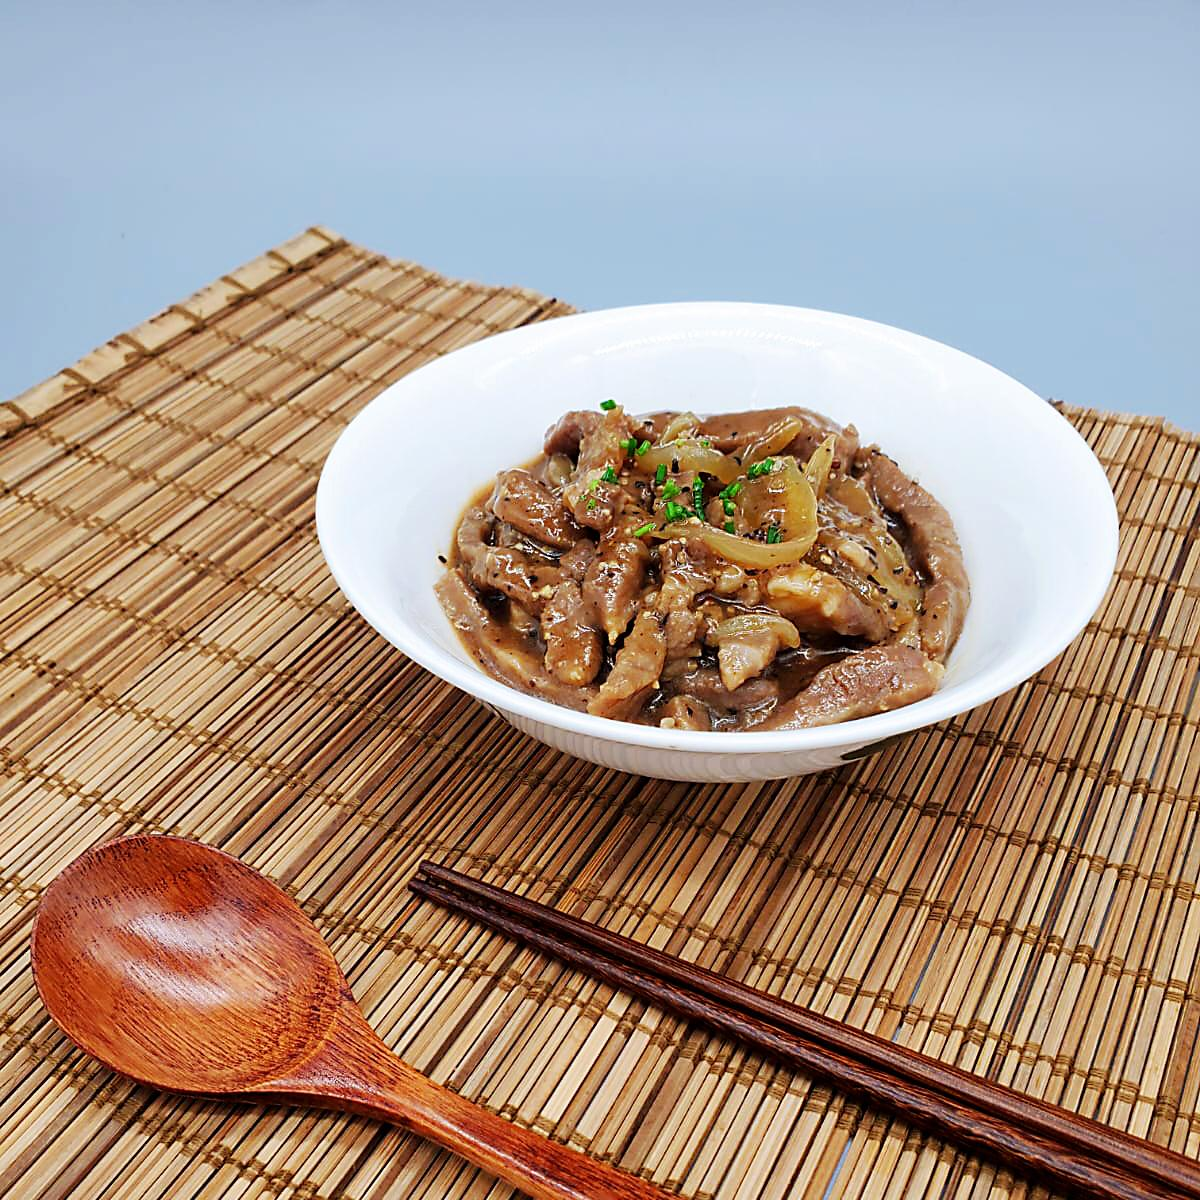 Stir-fried Beef with Black Pepper Sauce (New Product)